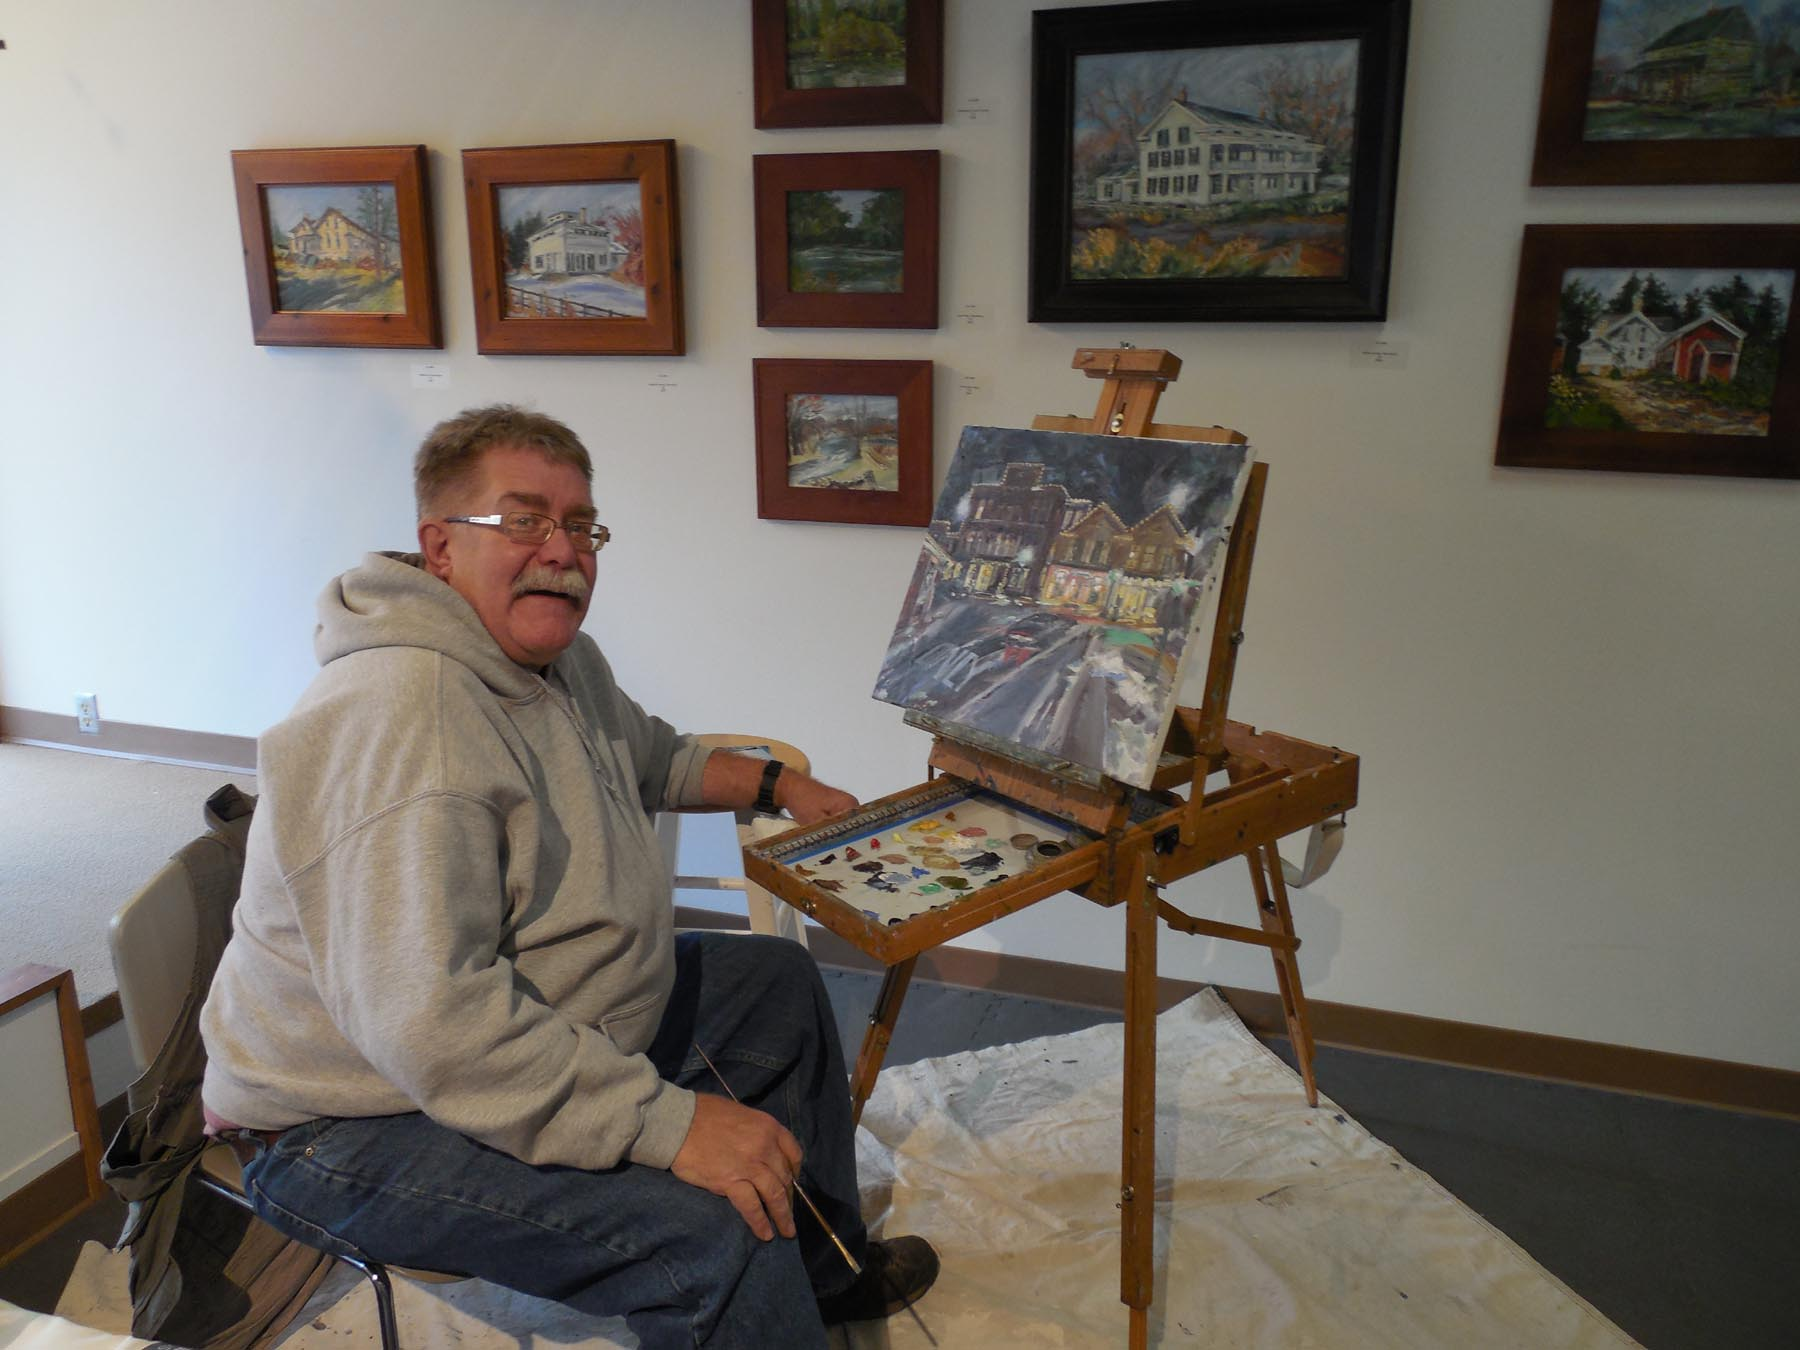 Paint Your Art Out February 7 at the CCC